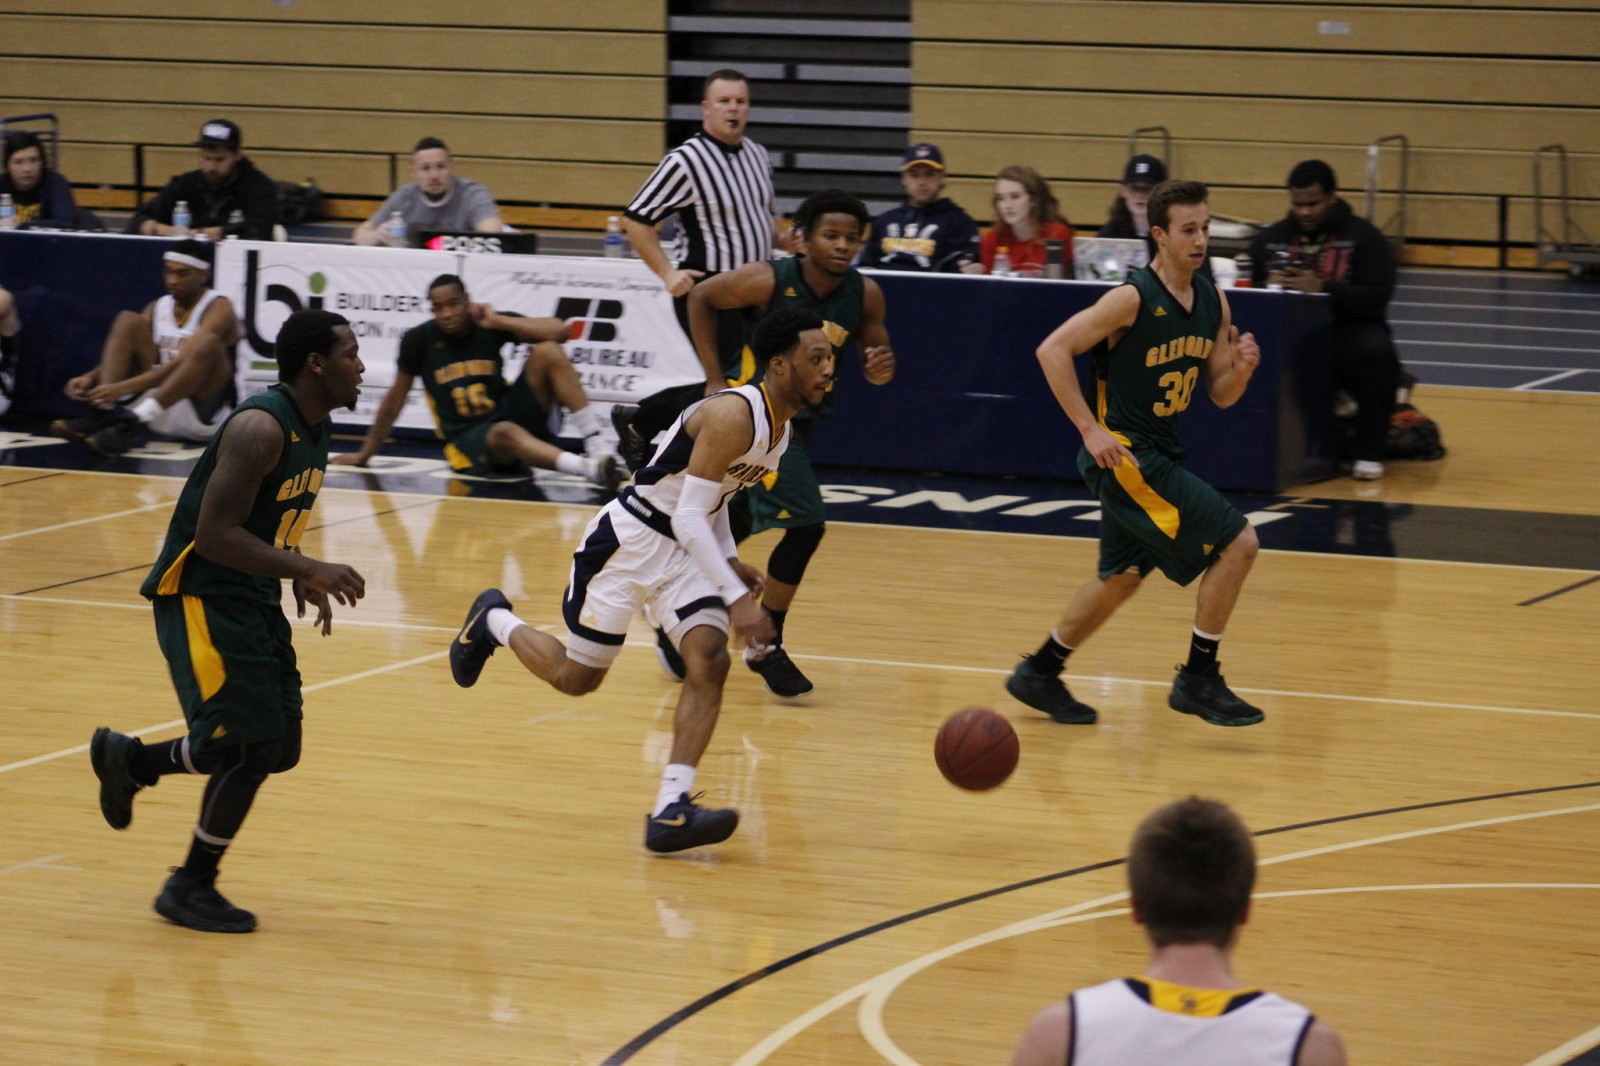 Sophomore Guard, #1, Arthur Pearson dribbling down the court to push the offense for GRCC to score in transition.